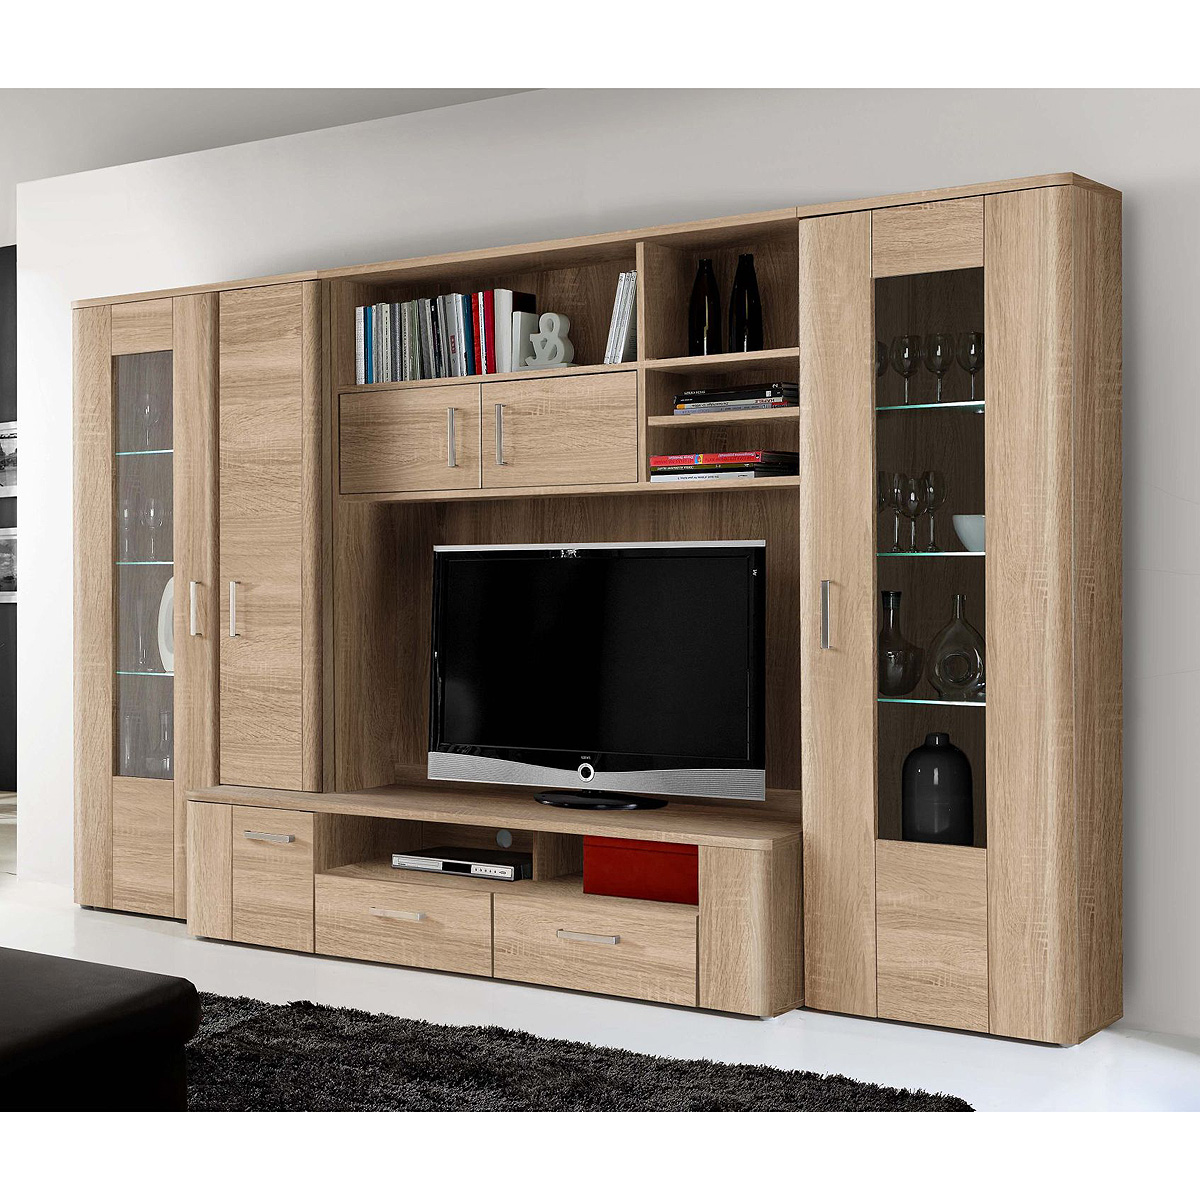 wohnwand belmondo anbauwand wohnkombi wohnzimmer sonoma eiche inkl led ebay. Black Bedroom Furniture Sets. Home Design Ideas